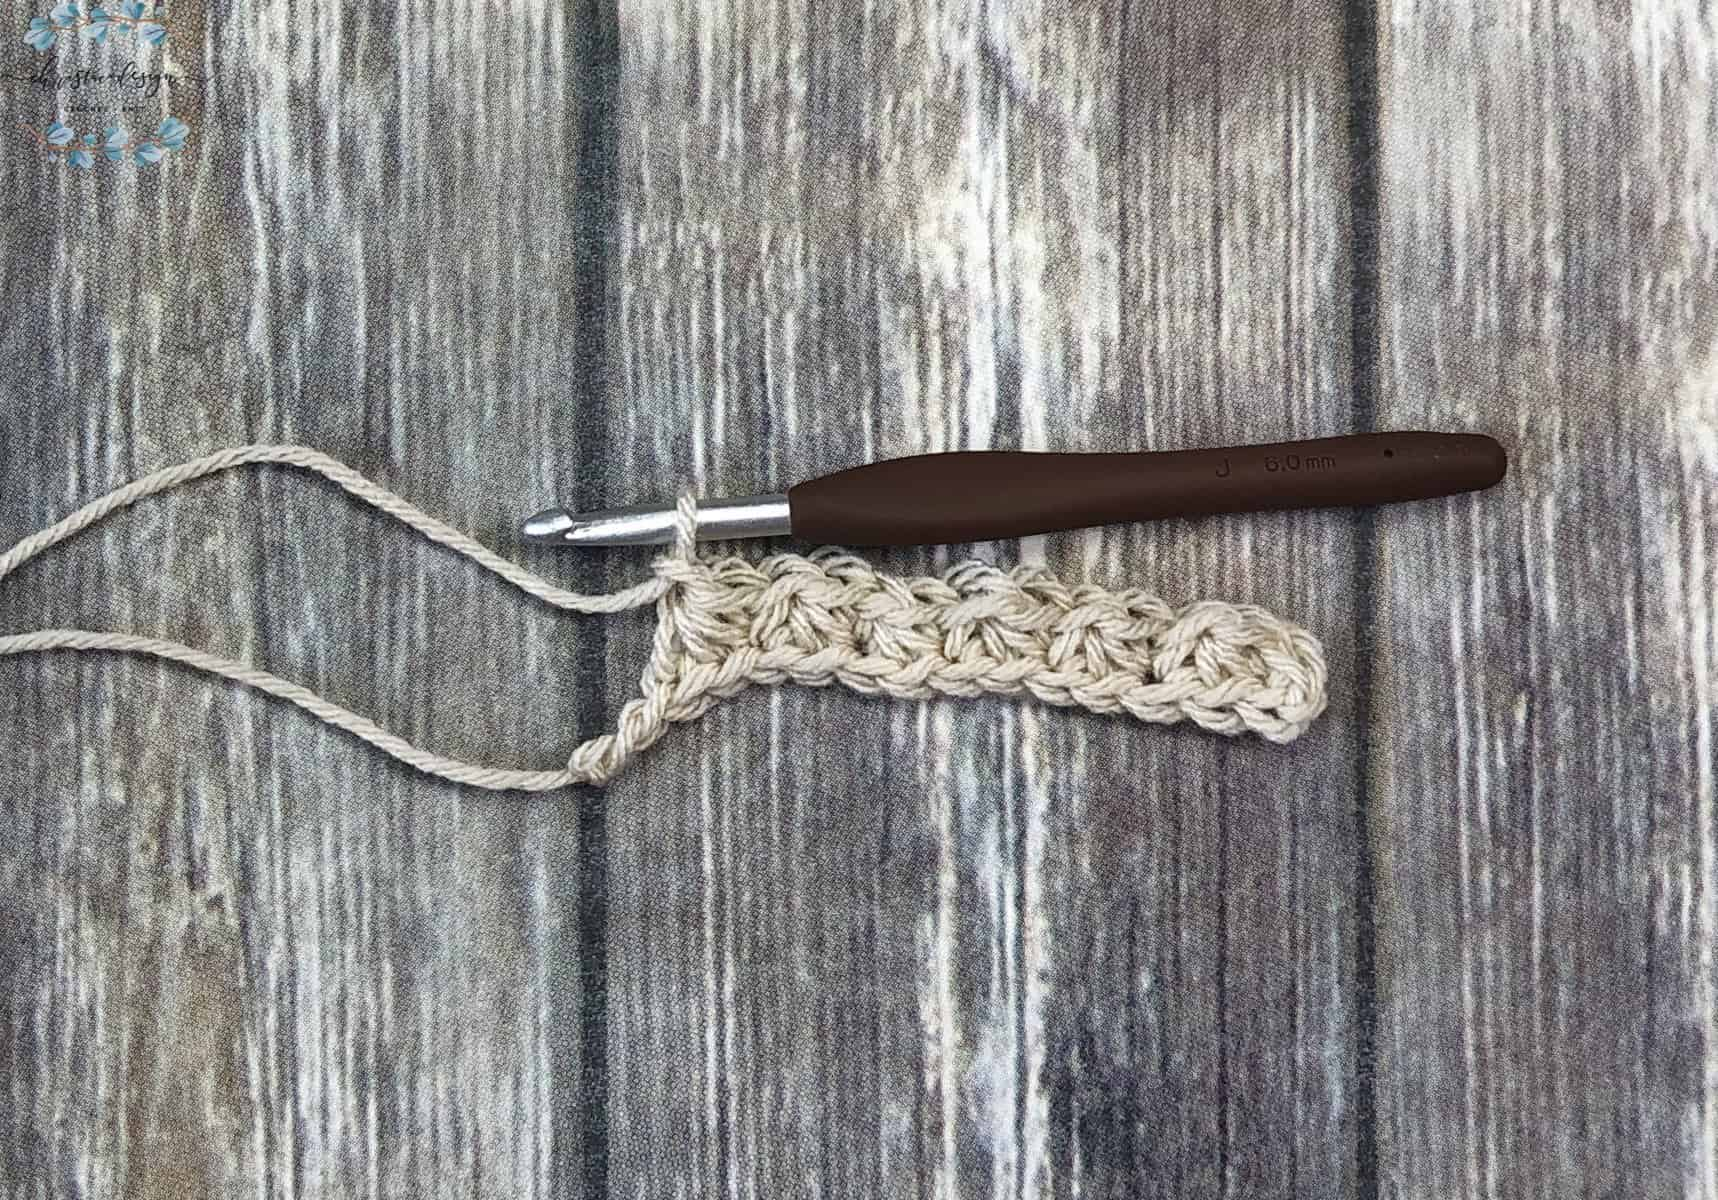 picture of trinity stitches across the row in beige yarn